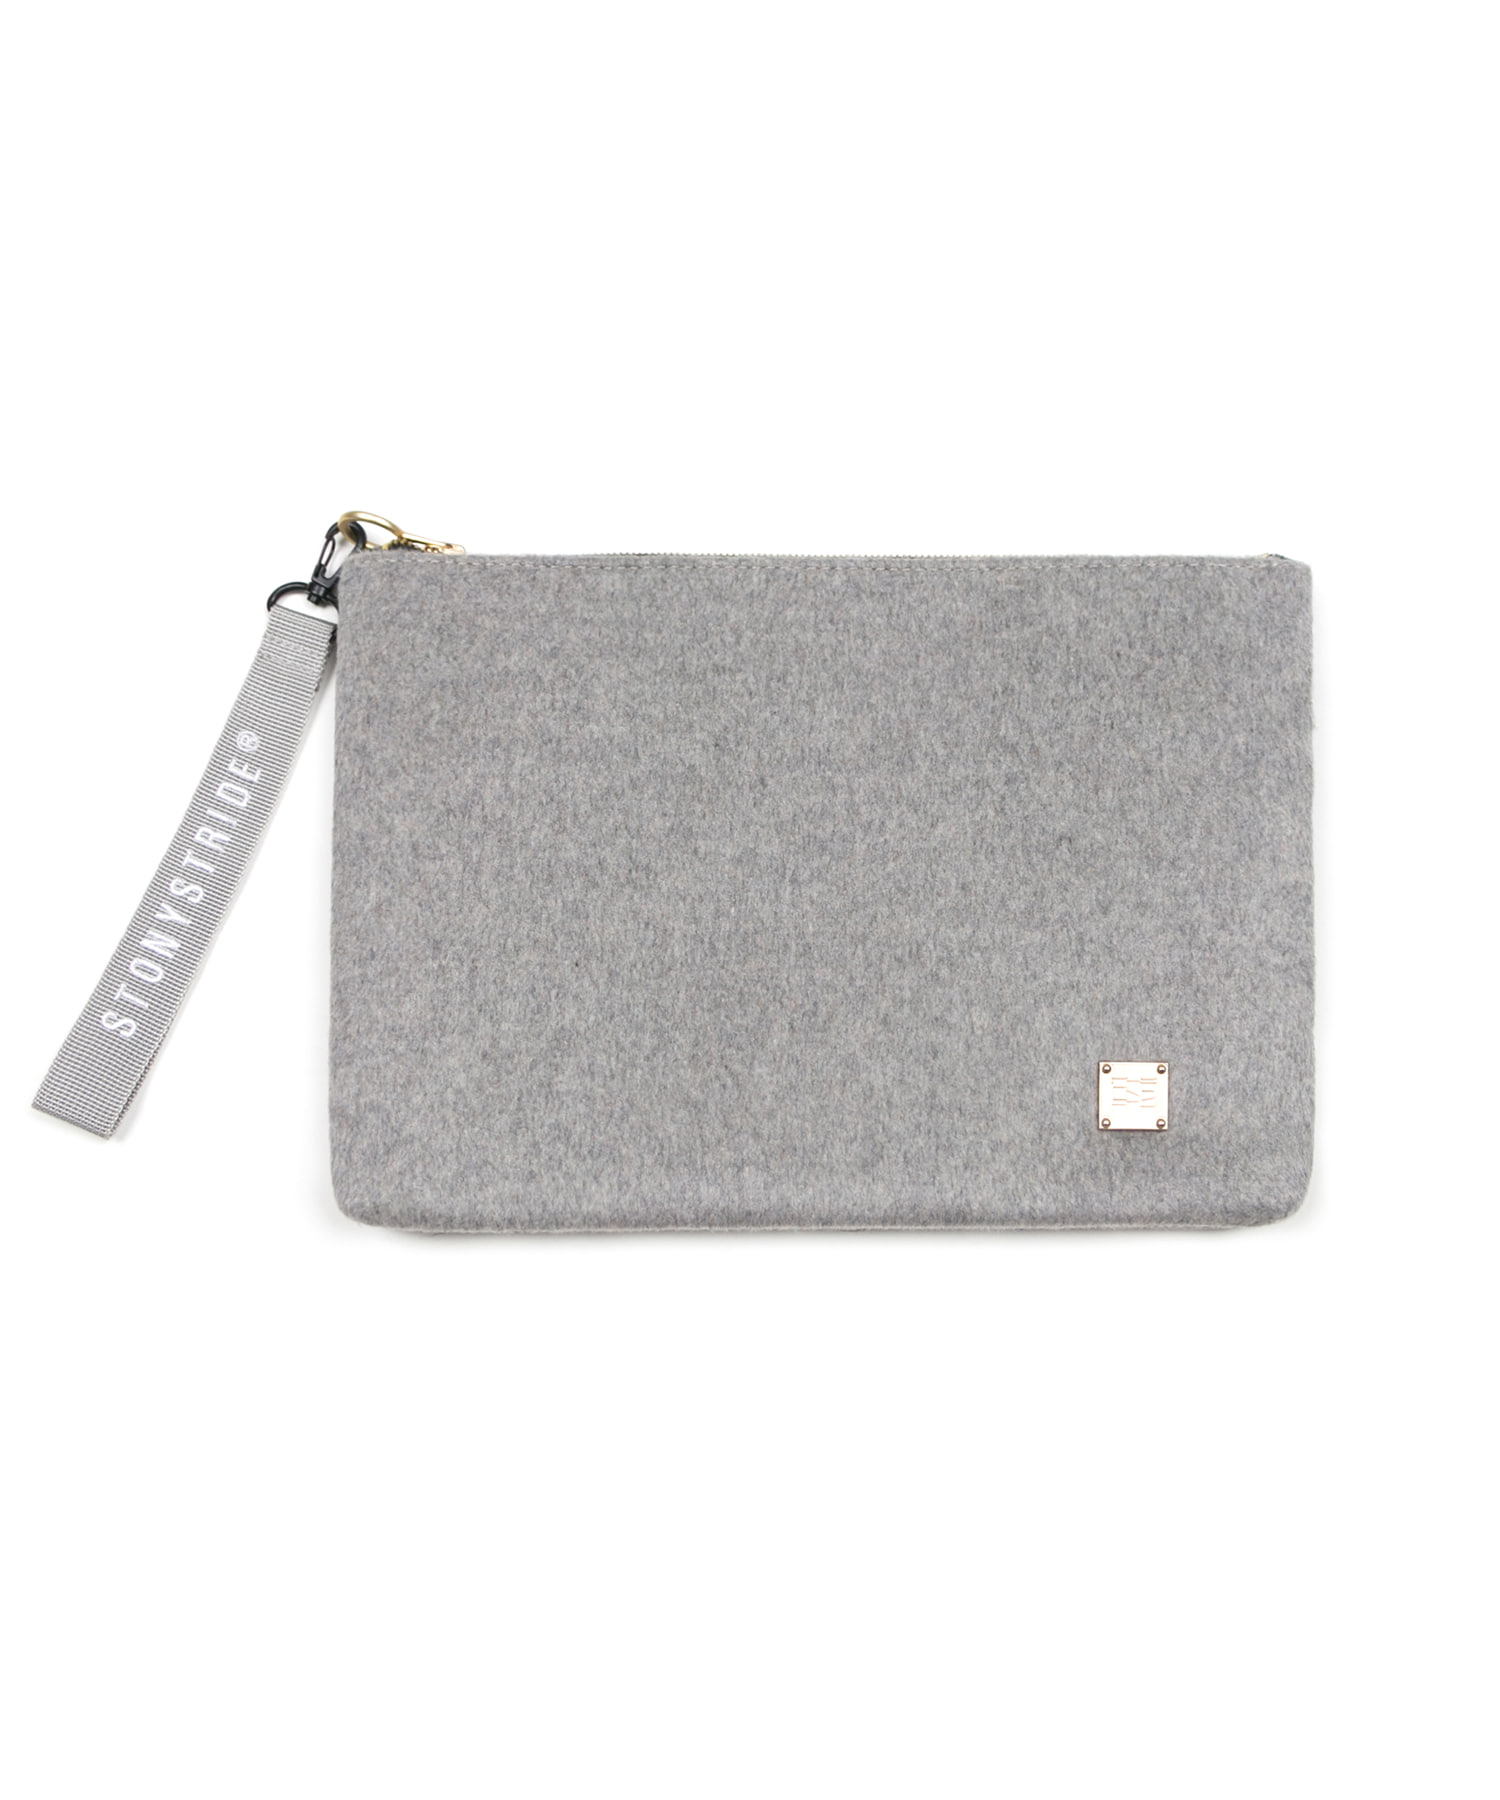 Delicate wool clutchbag - gray